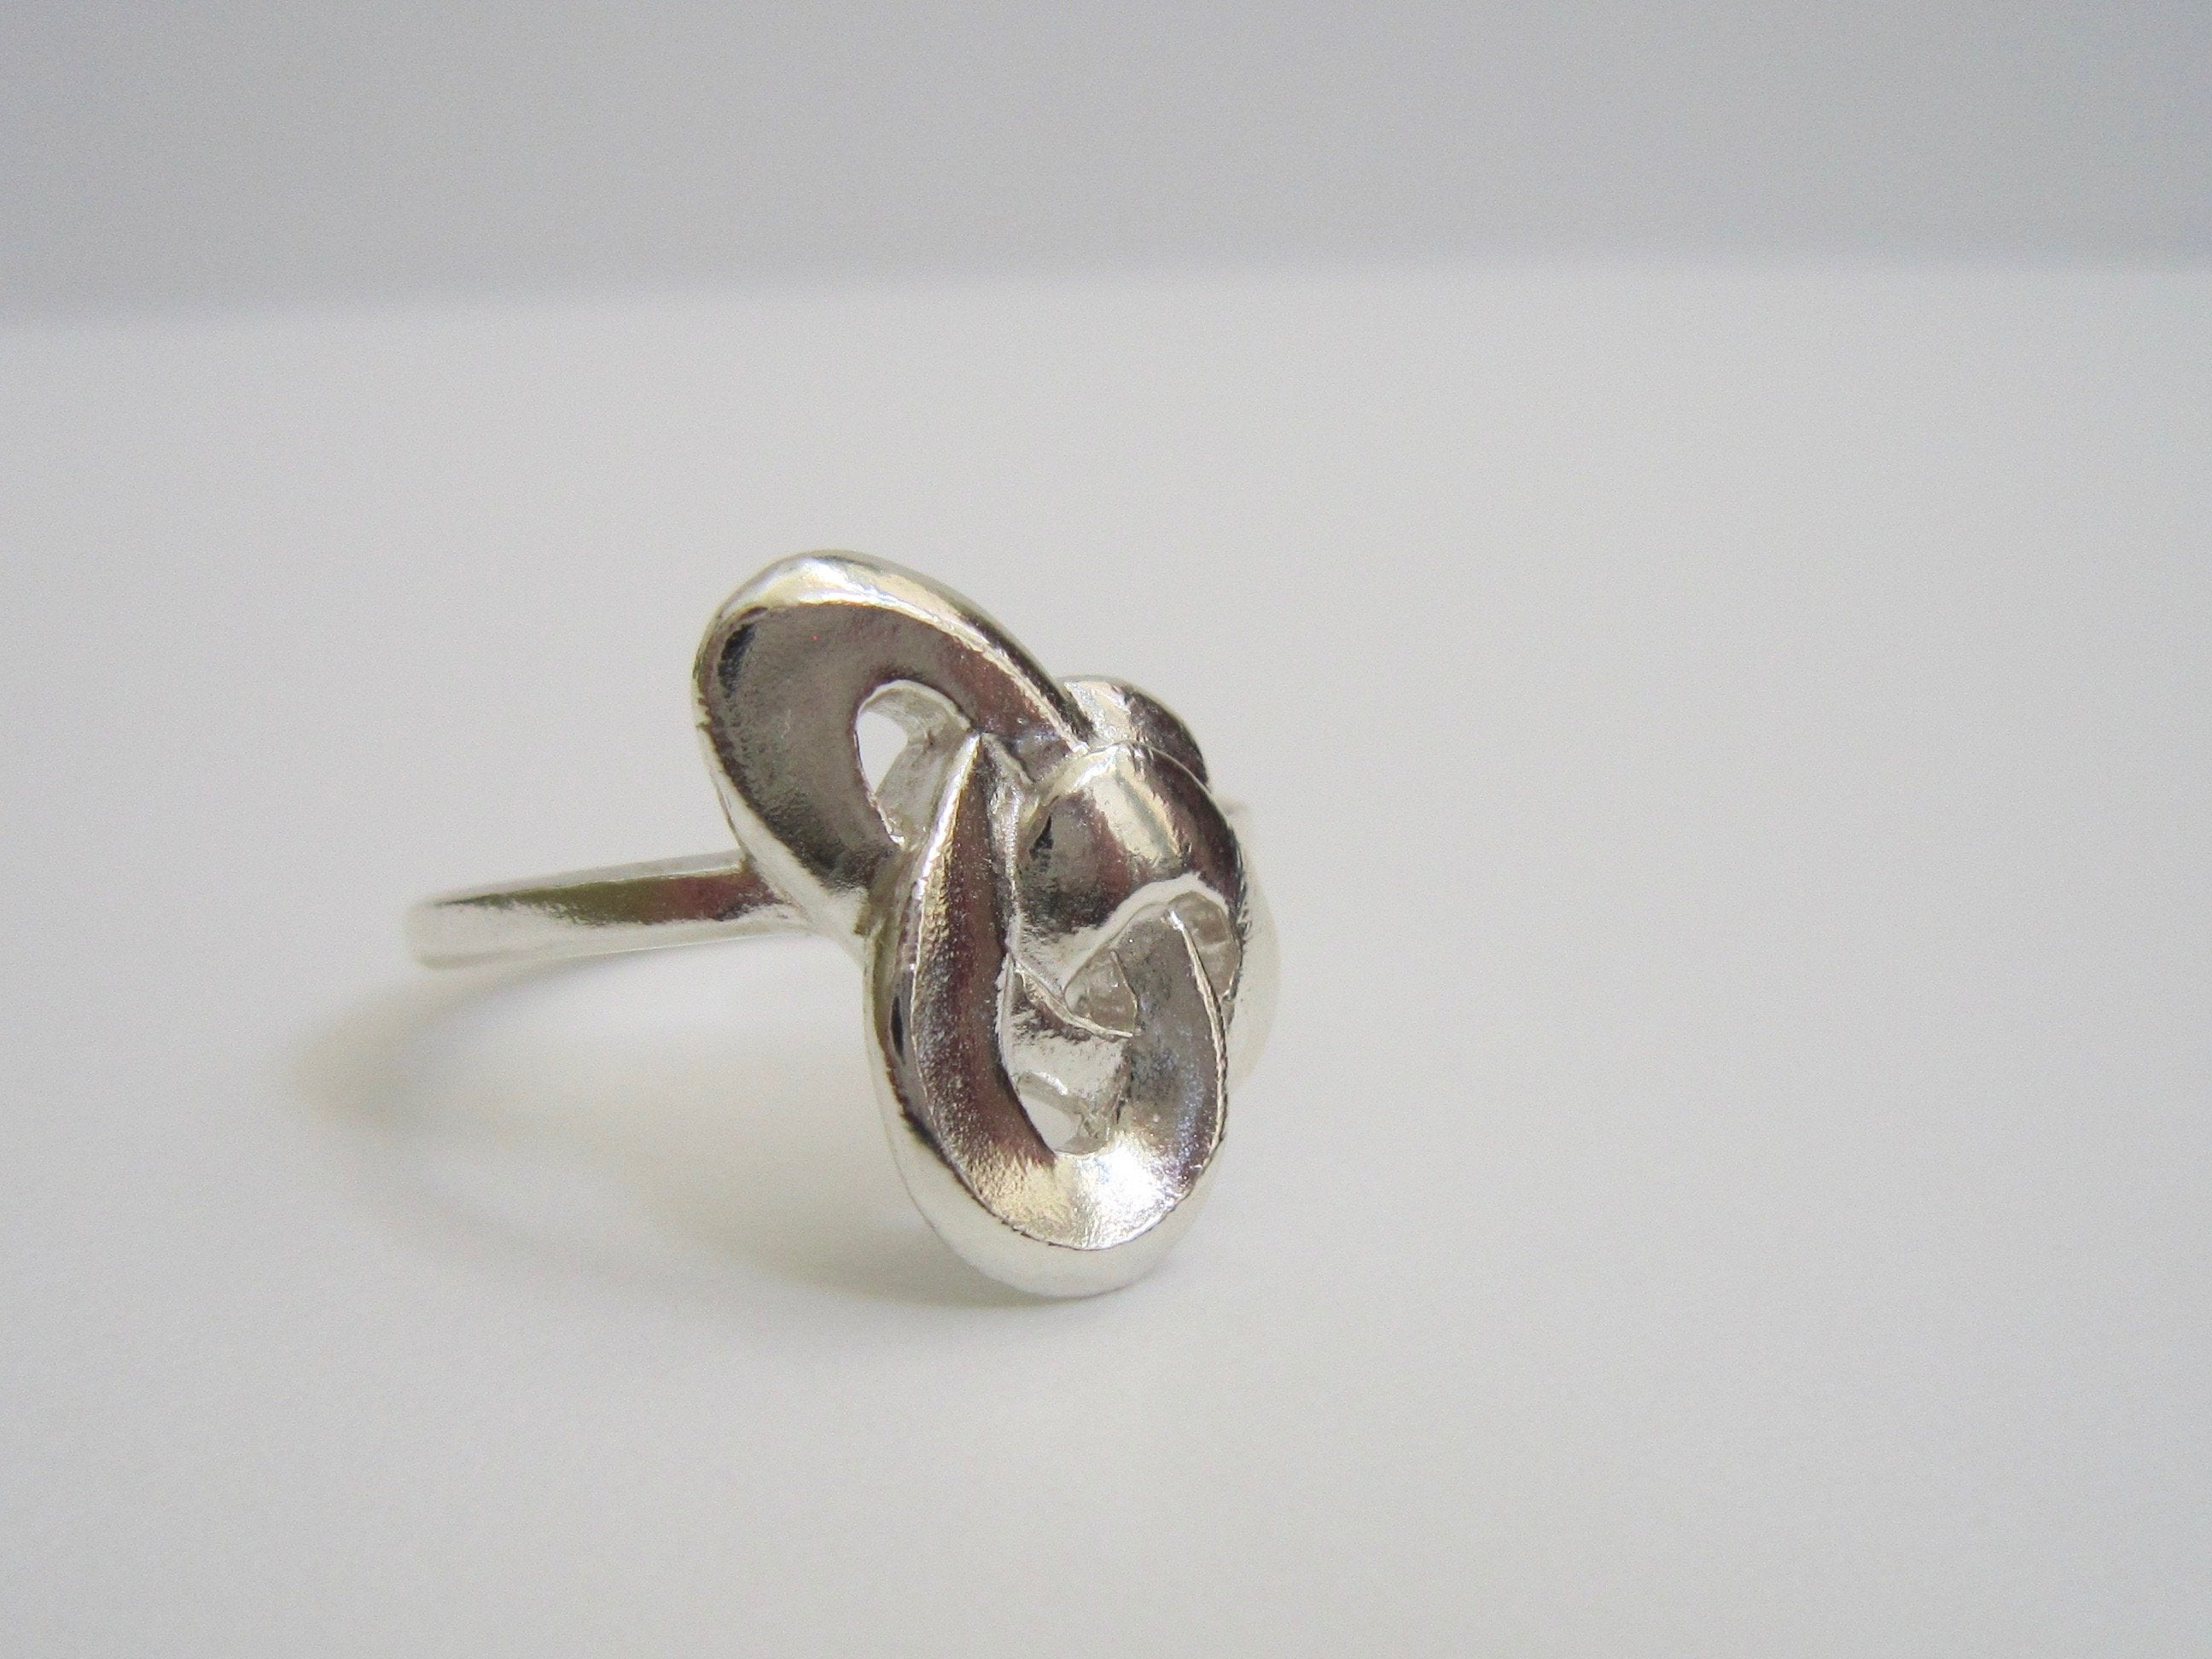 Knotted Infinity Ring - Amanda Schoppel Art & Wax Carving